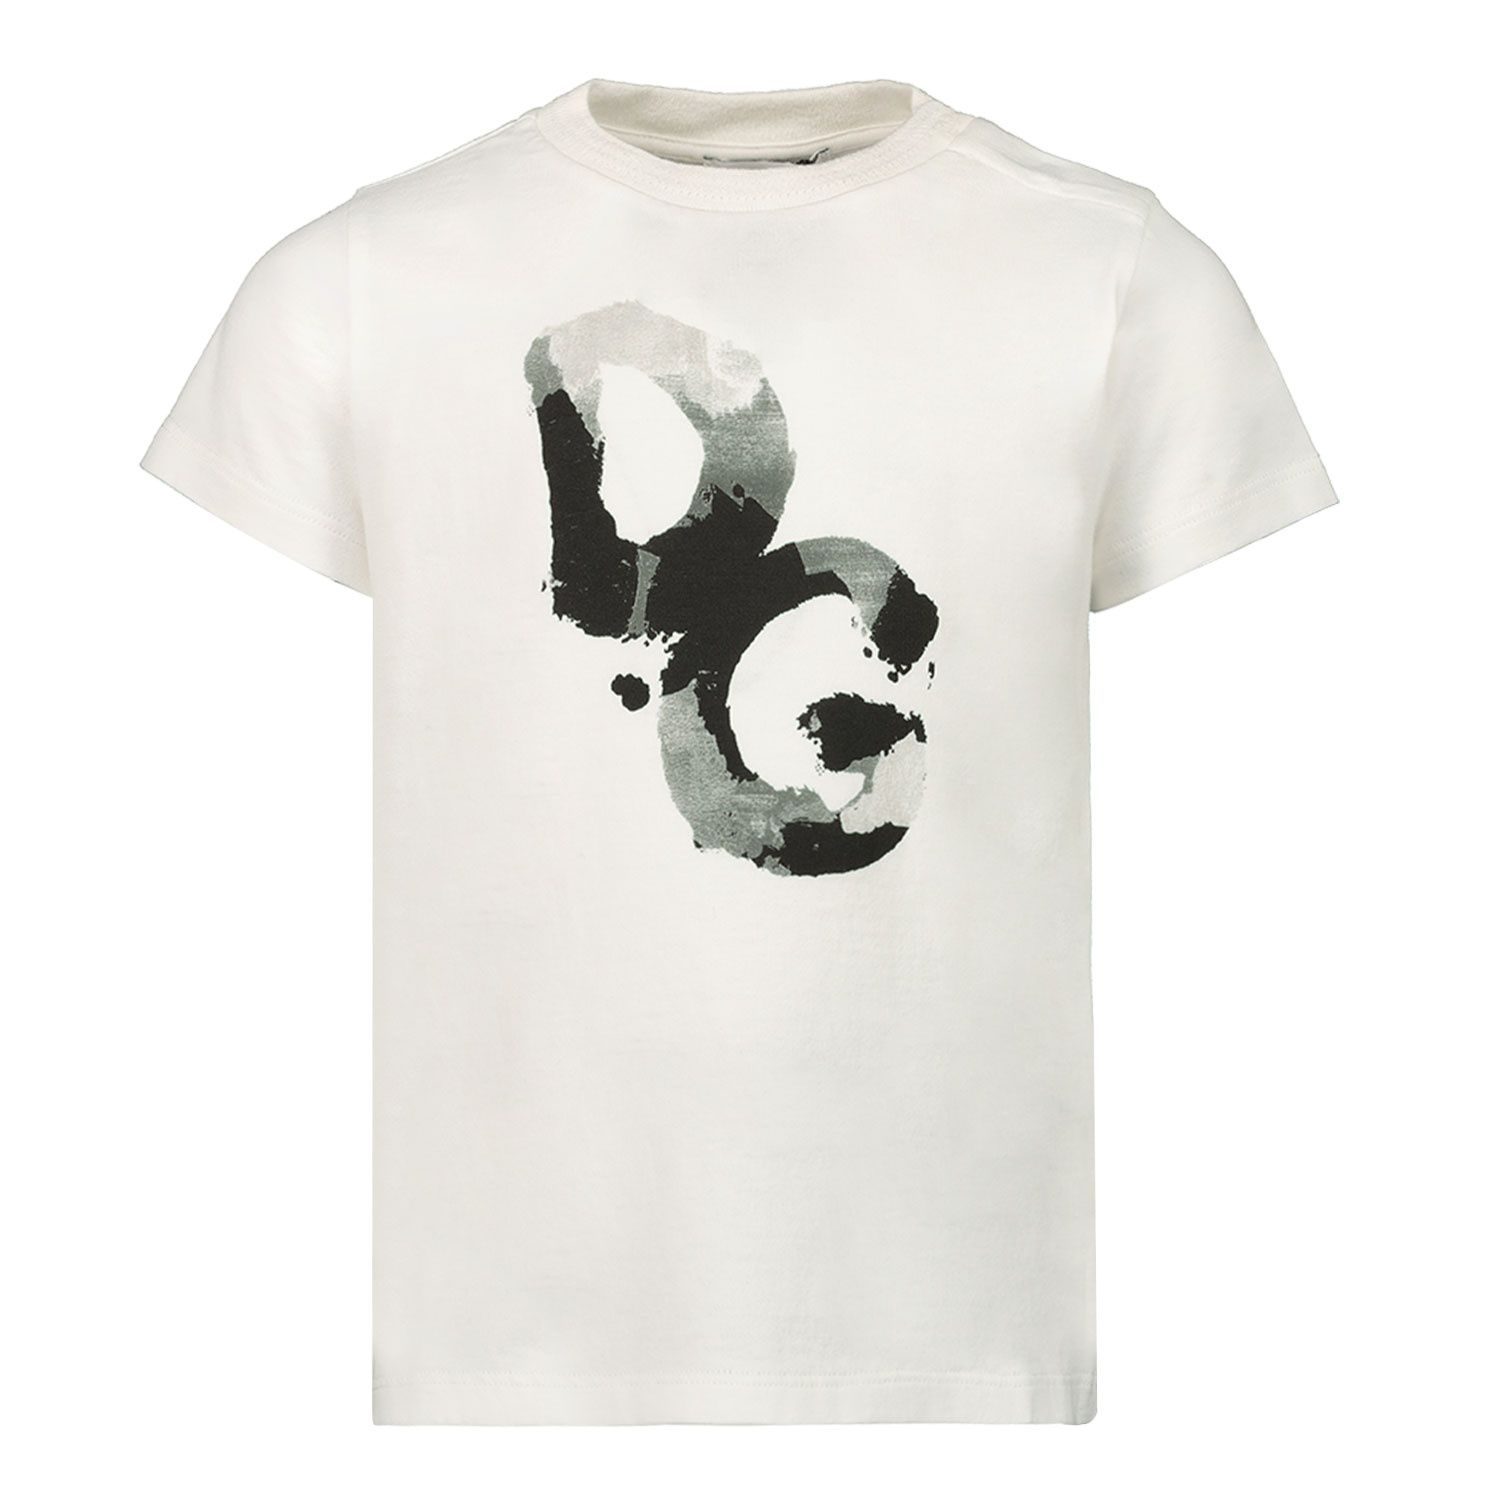 Picture of Dolce & Gabbana L1JT7W G7YFK baby shirt white